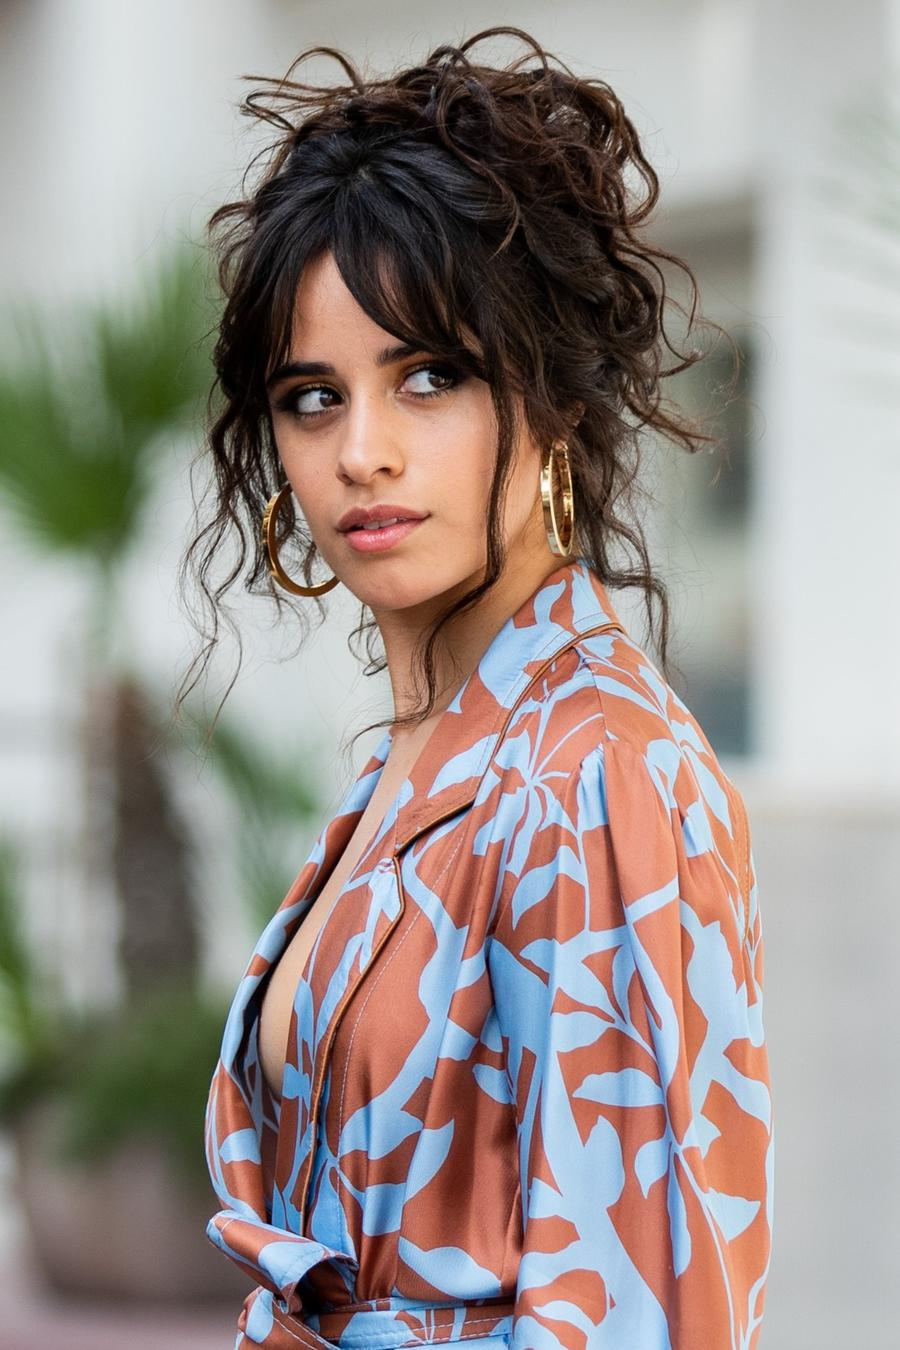 Camila Cabello wearing a blue and orange kimono